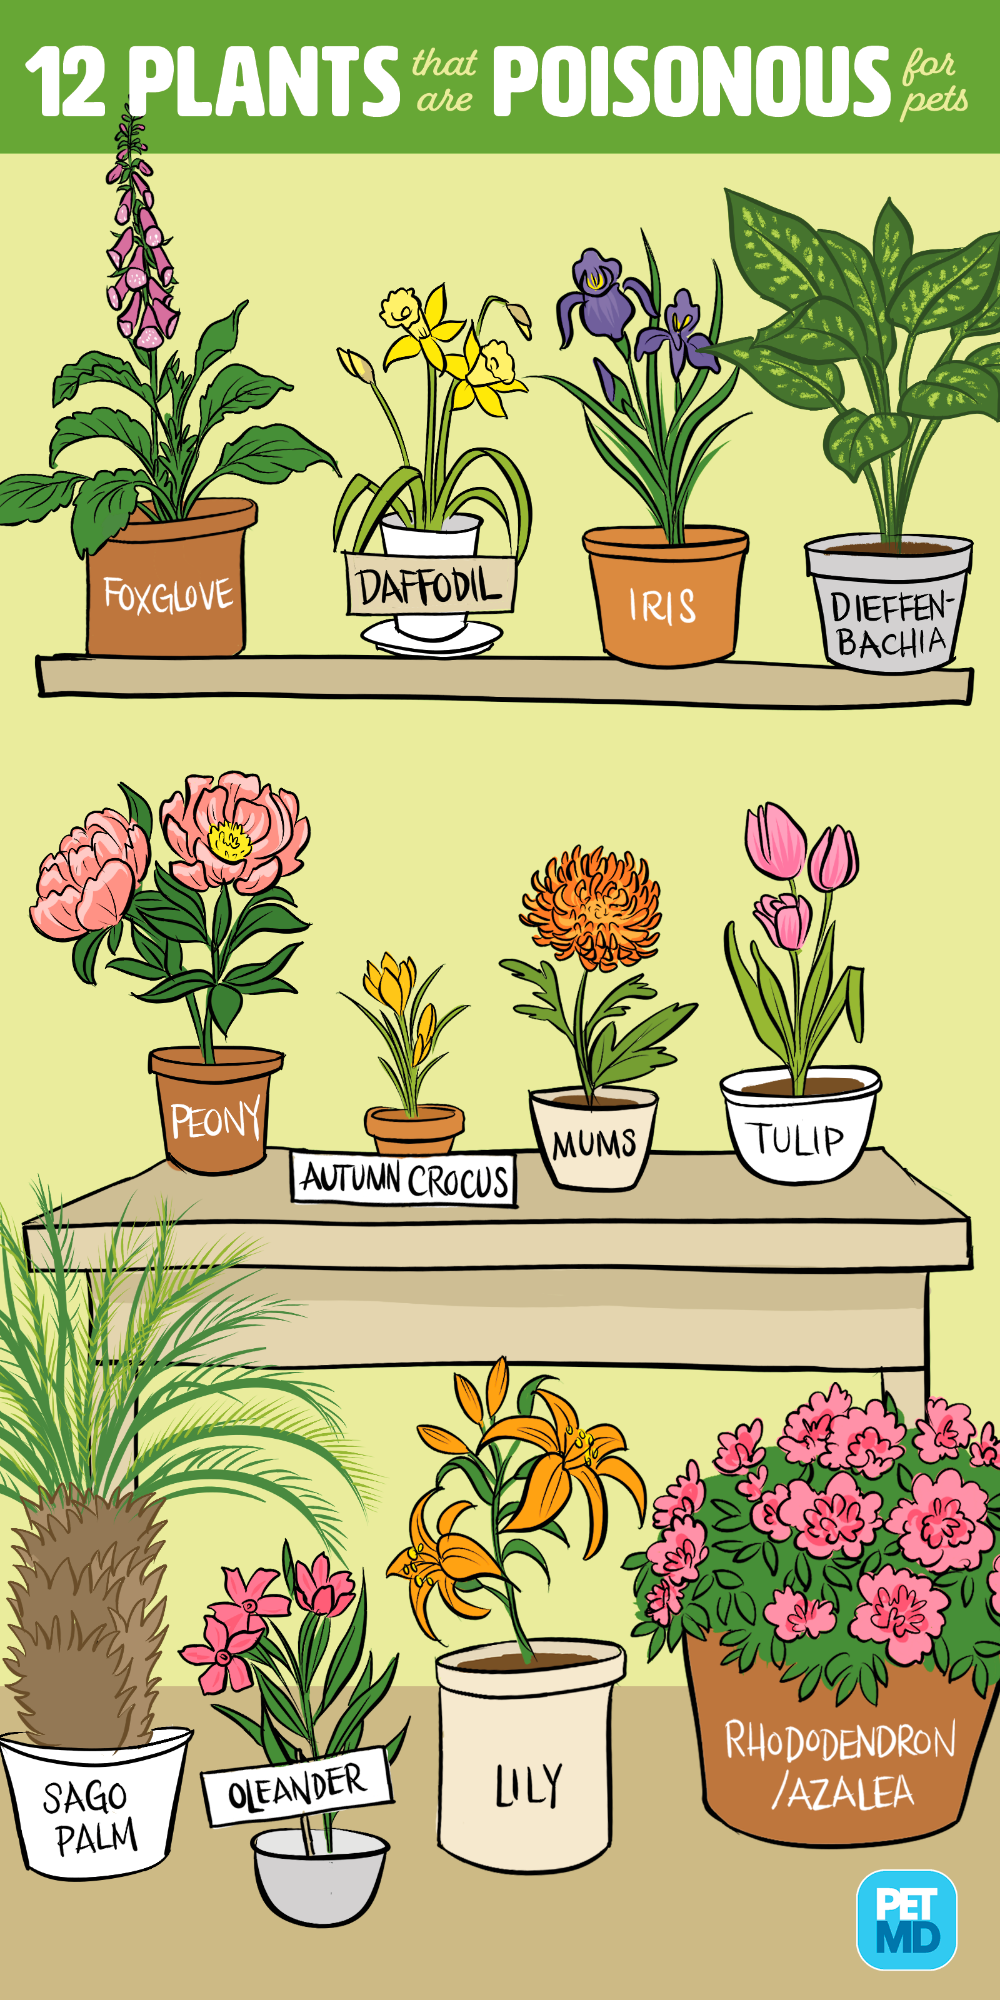 12 Plants That Are Poisonous For Dogs And Cats Petmd Cats Dogs Petmd Plants Poisonous In 2020 Cat Plants Toxic Plants For Cats Dog Safe Plants